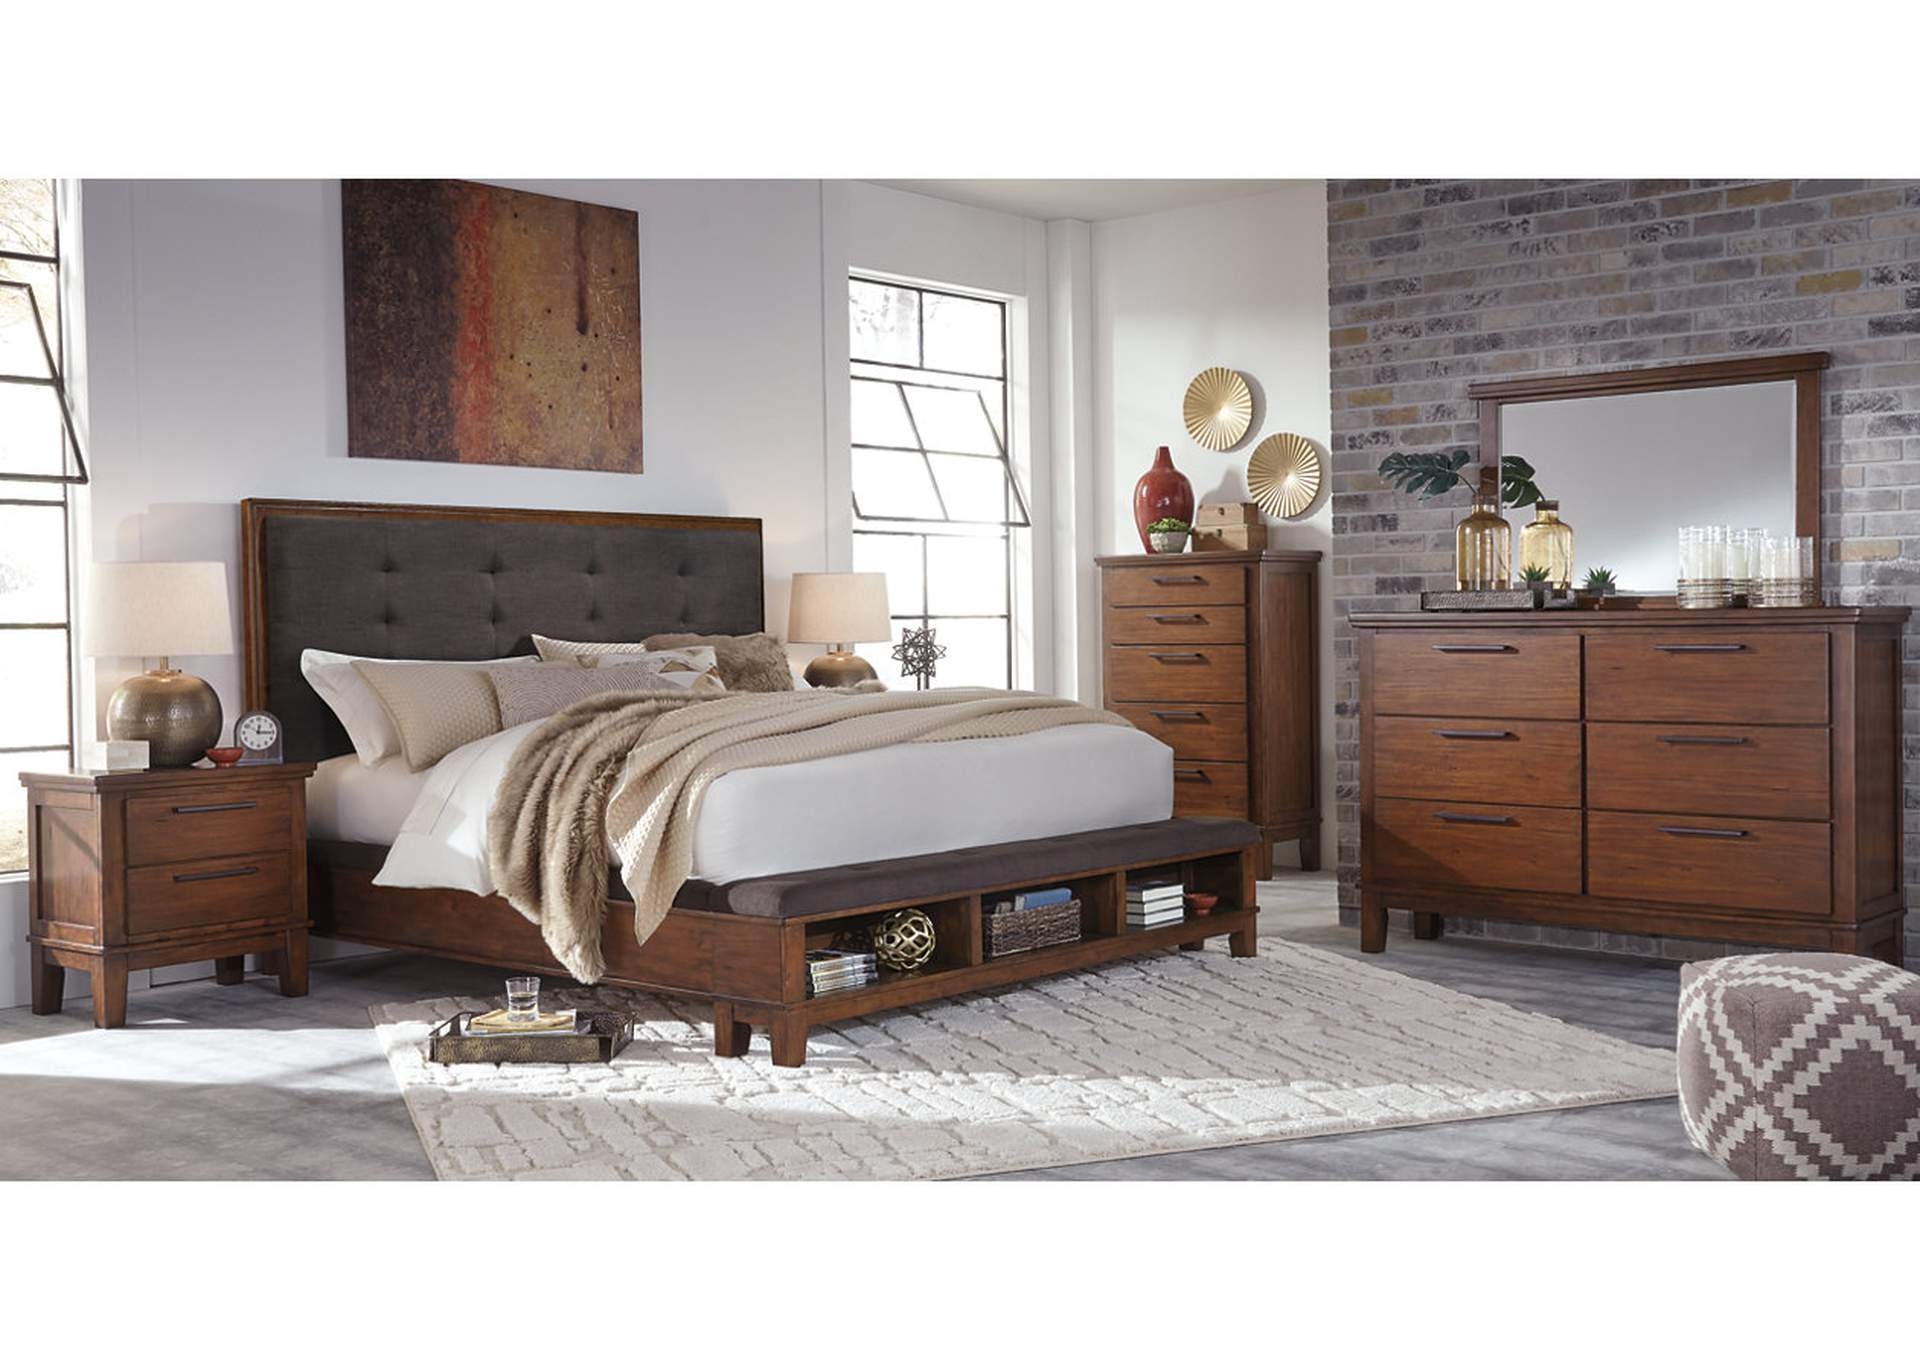 Ralene Medium Brown King Upholstered Storage Bed w/Dresser, Mirror & Drawer Chest,Signature Design By Ashley